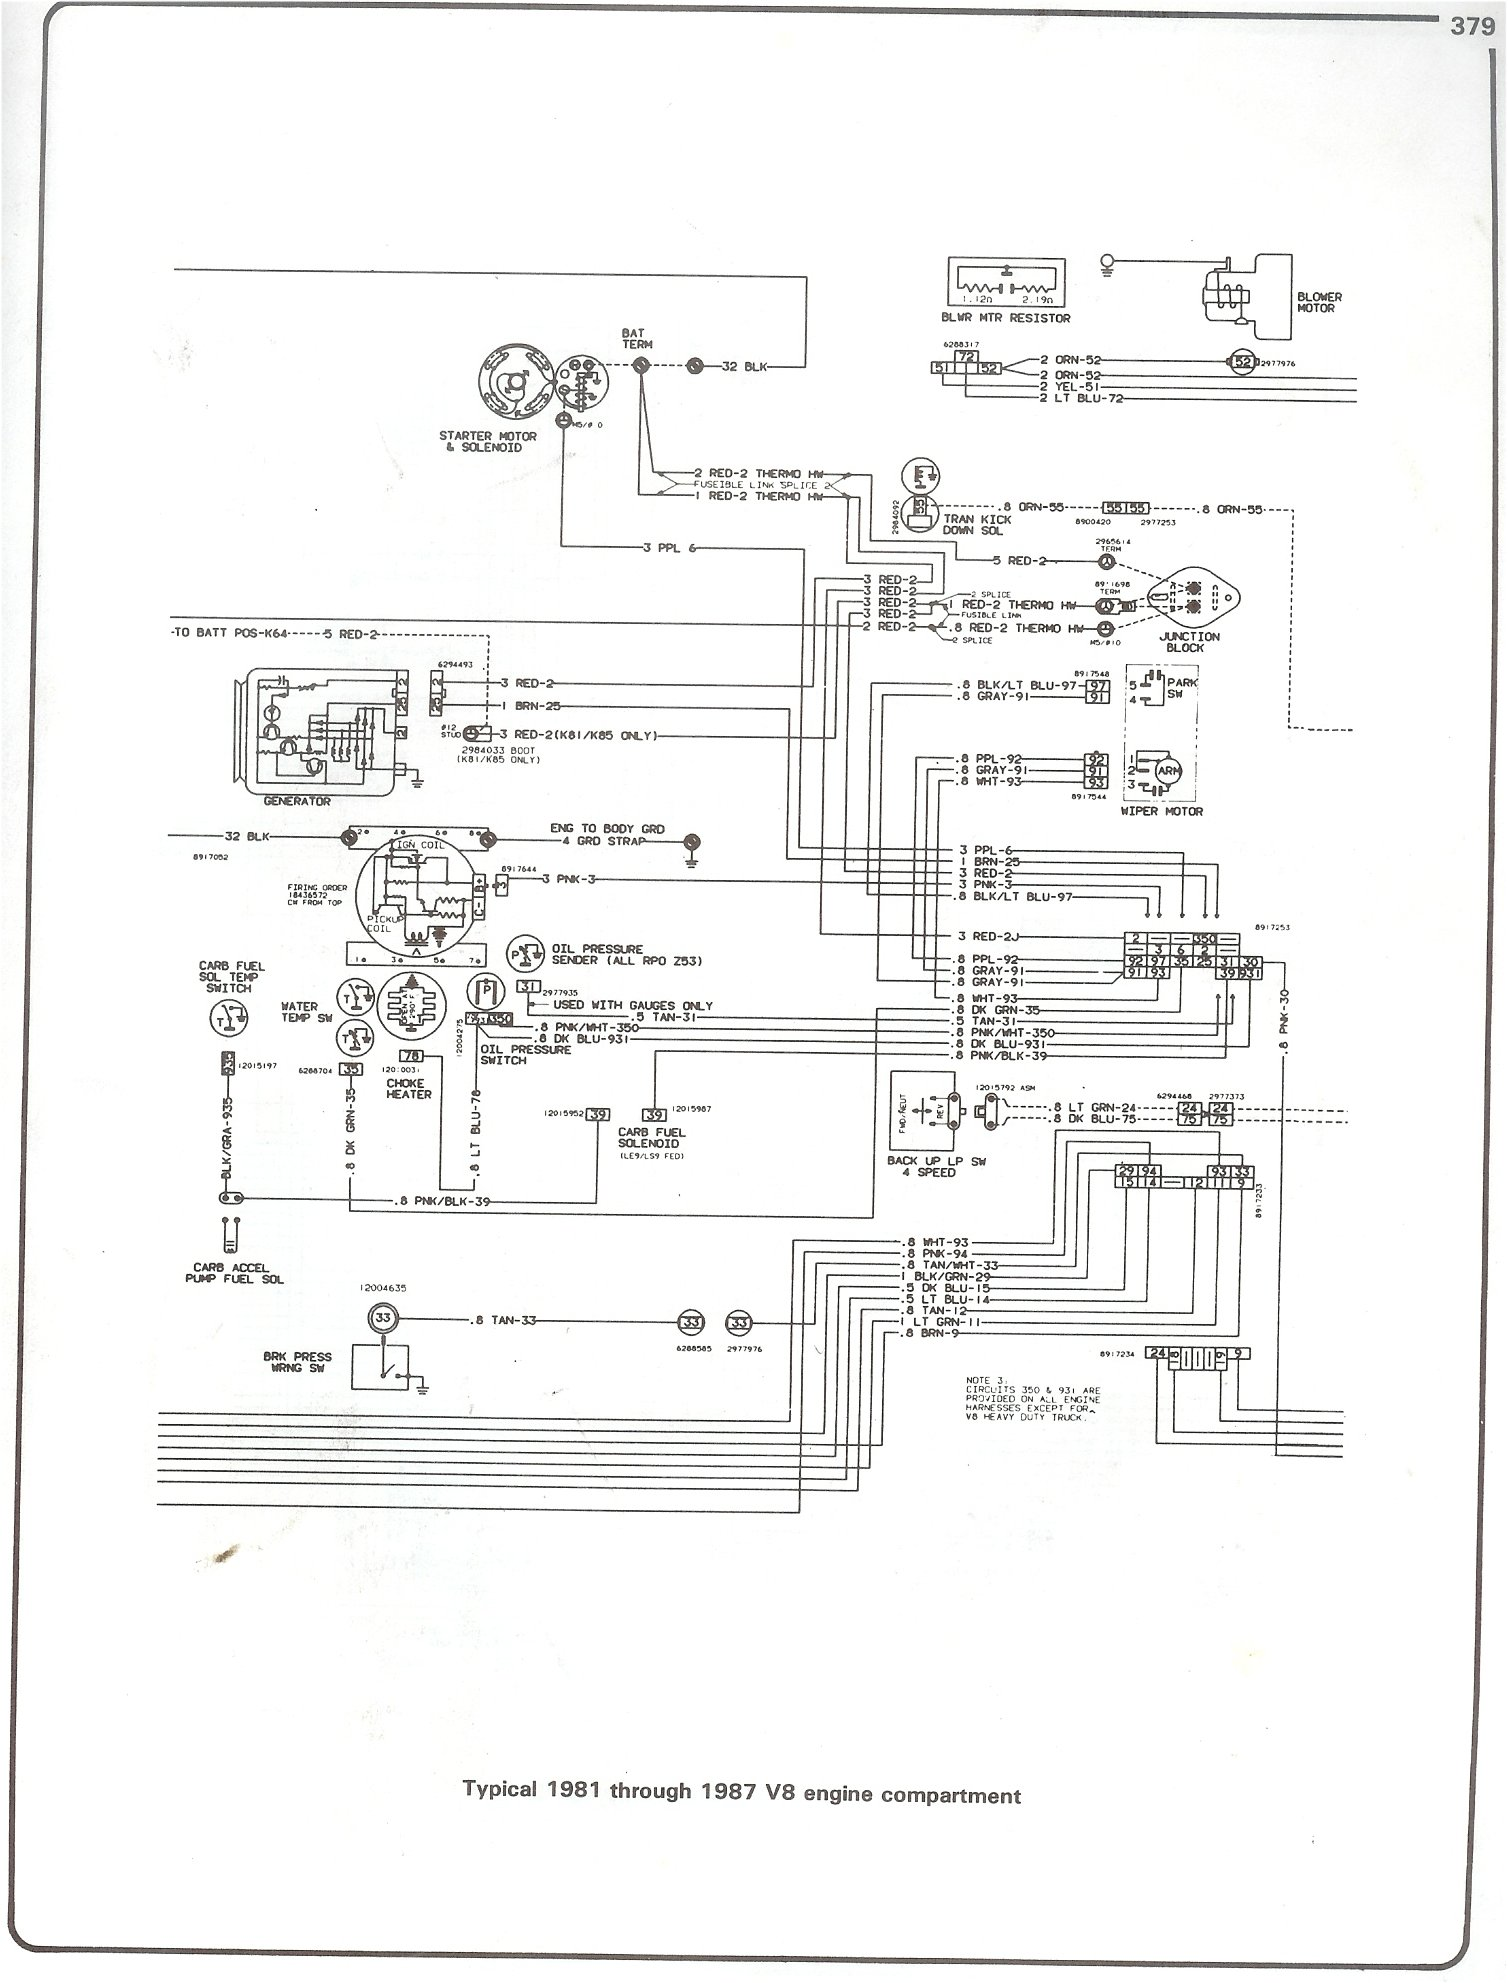 wiring diagram for 1997 chevy suburban diagram schematic ideas 1997 Blazer Exhaust System